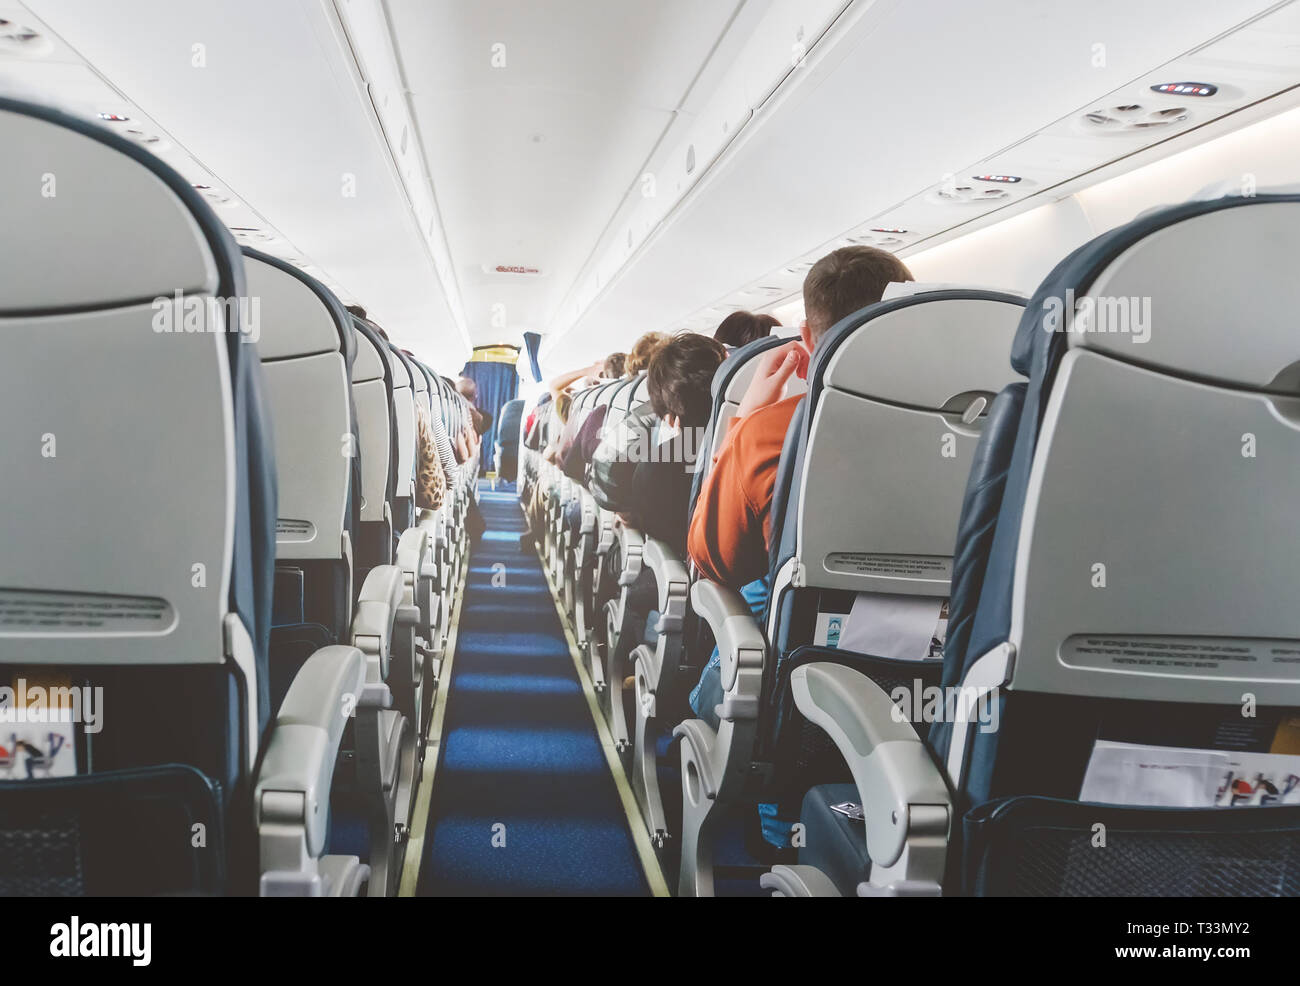 Empty Economy Seats On Aeroplane Stock Photos Amp Empty